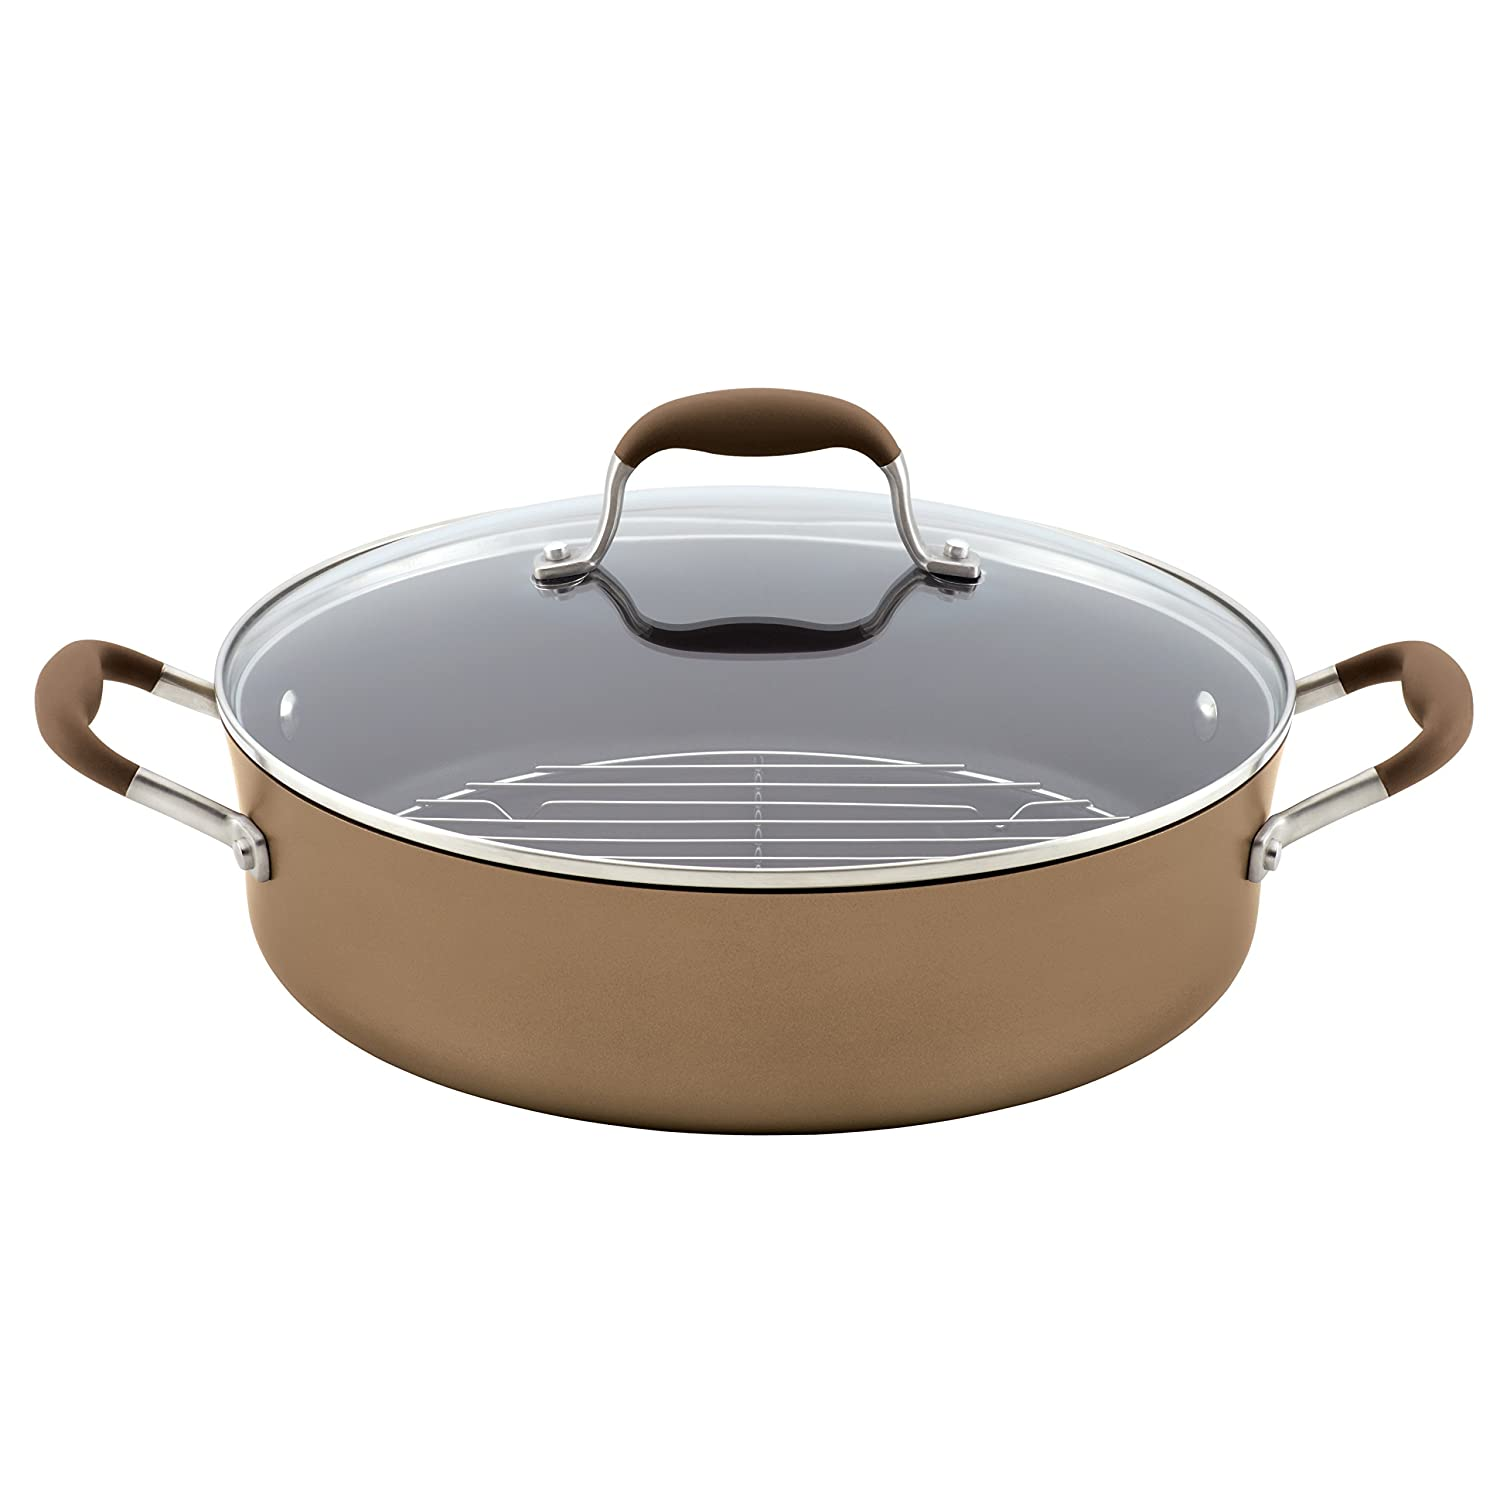 Anolon Advanced Bronze Hard Anodized Nonstick 5.5-Quart Covered Braiser with Rack Meyer 83490